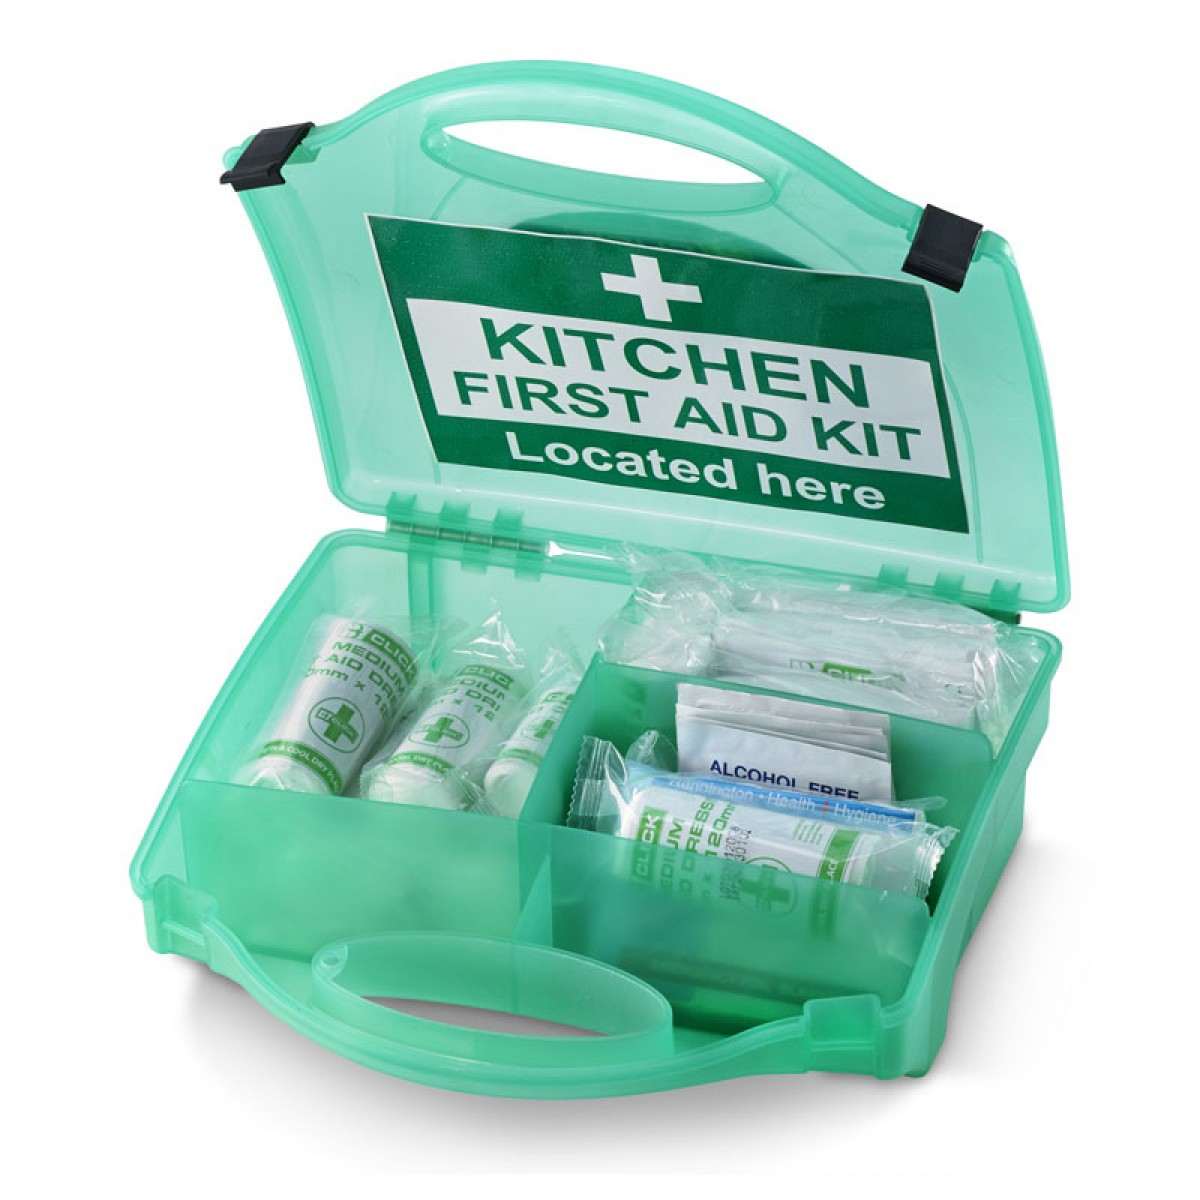 Kitchen First Aid Kits 10 Person With First Aid Kit